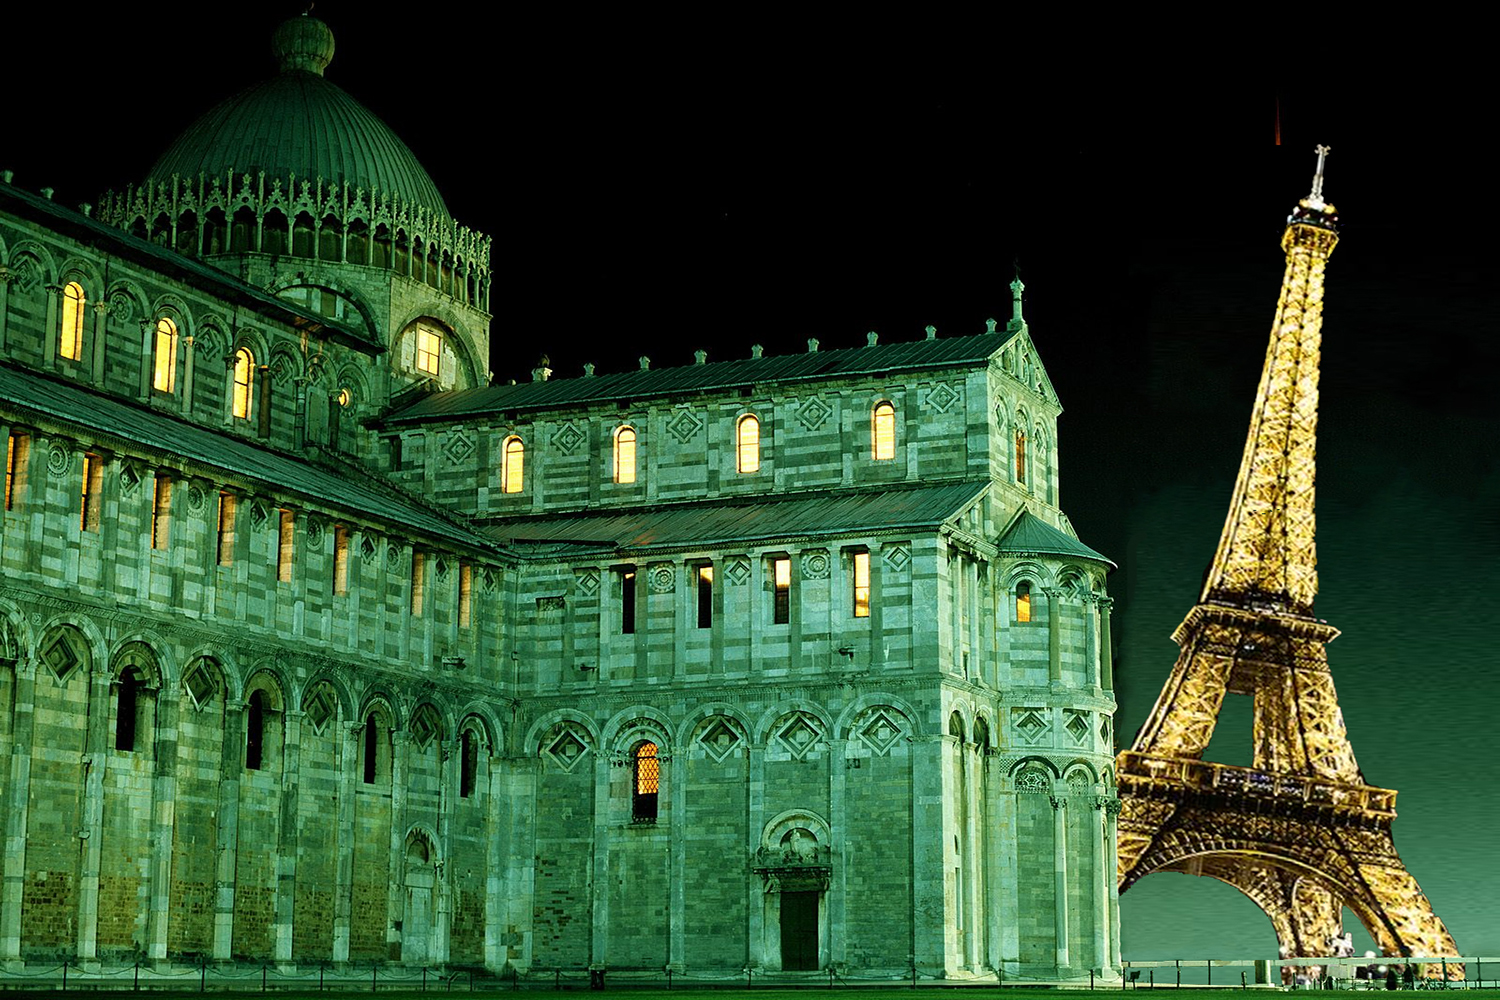 What if Eiffel Tower were in Pisa